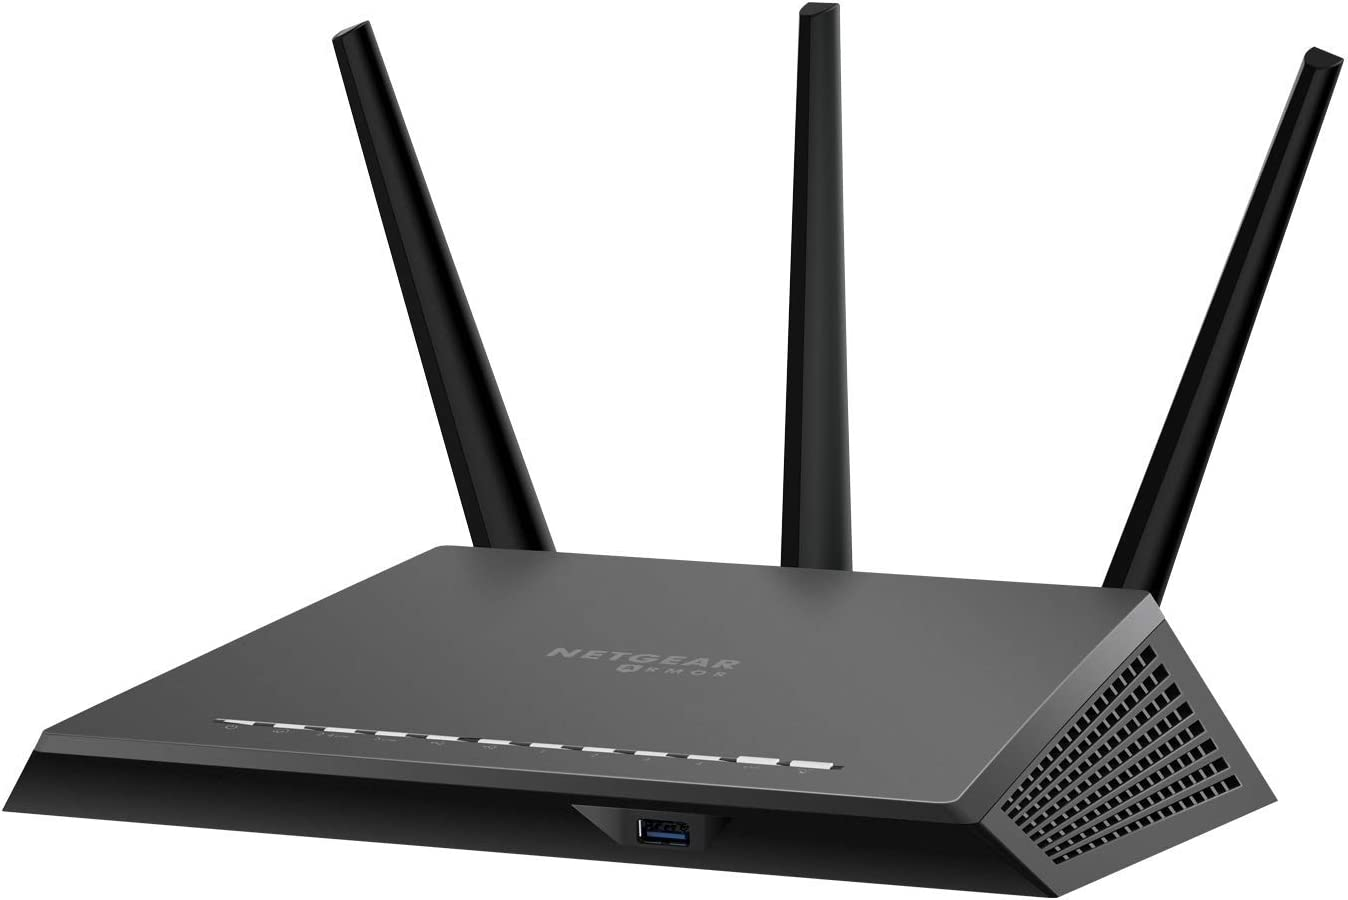 NETGEAR Nighthawk Smart WiFi Router (RS400) - AC2300 Wireless Speed (up to 2300 Mbps) | Up to 2000 sq ft Coverage & 35 Devices | 4 x 1G Ethernet and 2 USB Ports | Includes 3 Years of Armor Security